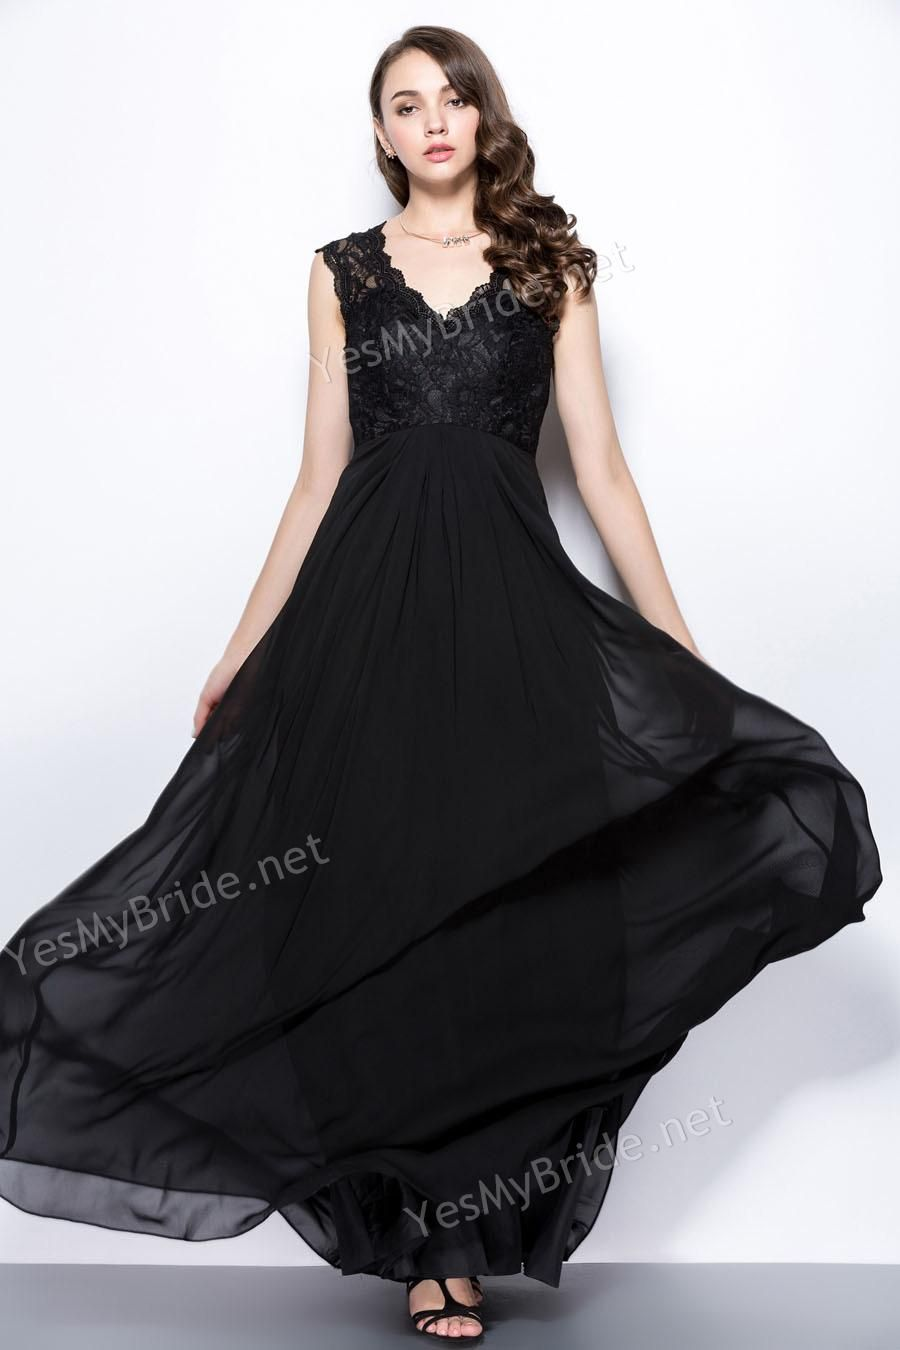 Possible maids dress coppolaloehr wedding pinterest long designer romantic scalloped v neck lace and chiffon long black bridesmaid dress with sheer back is for sale buy romantic scalloped v neck lace and chiffon ombrellifo Gallery